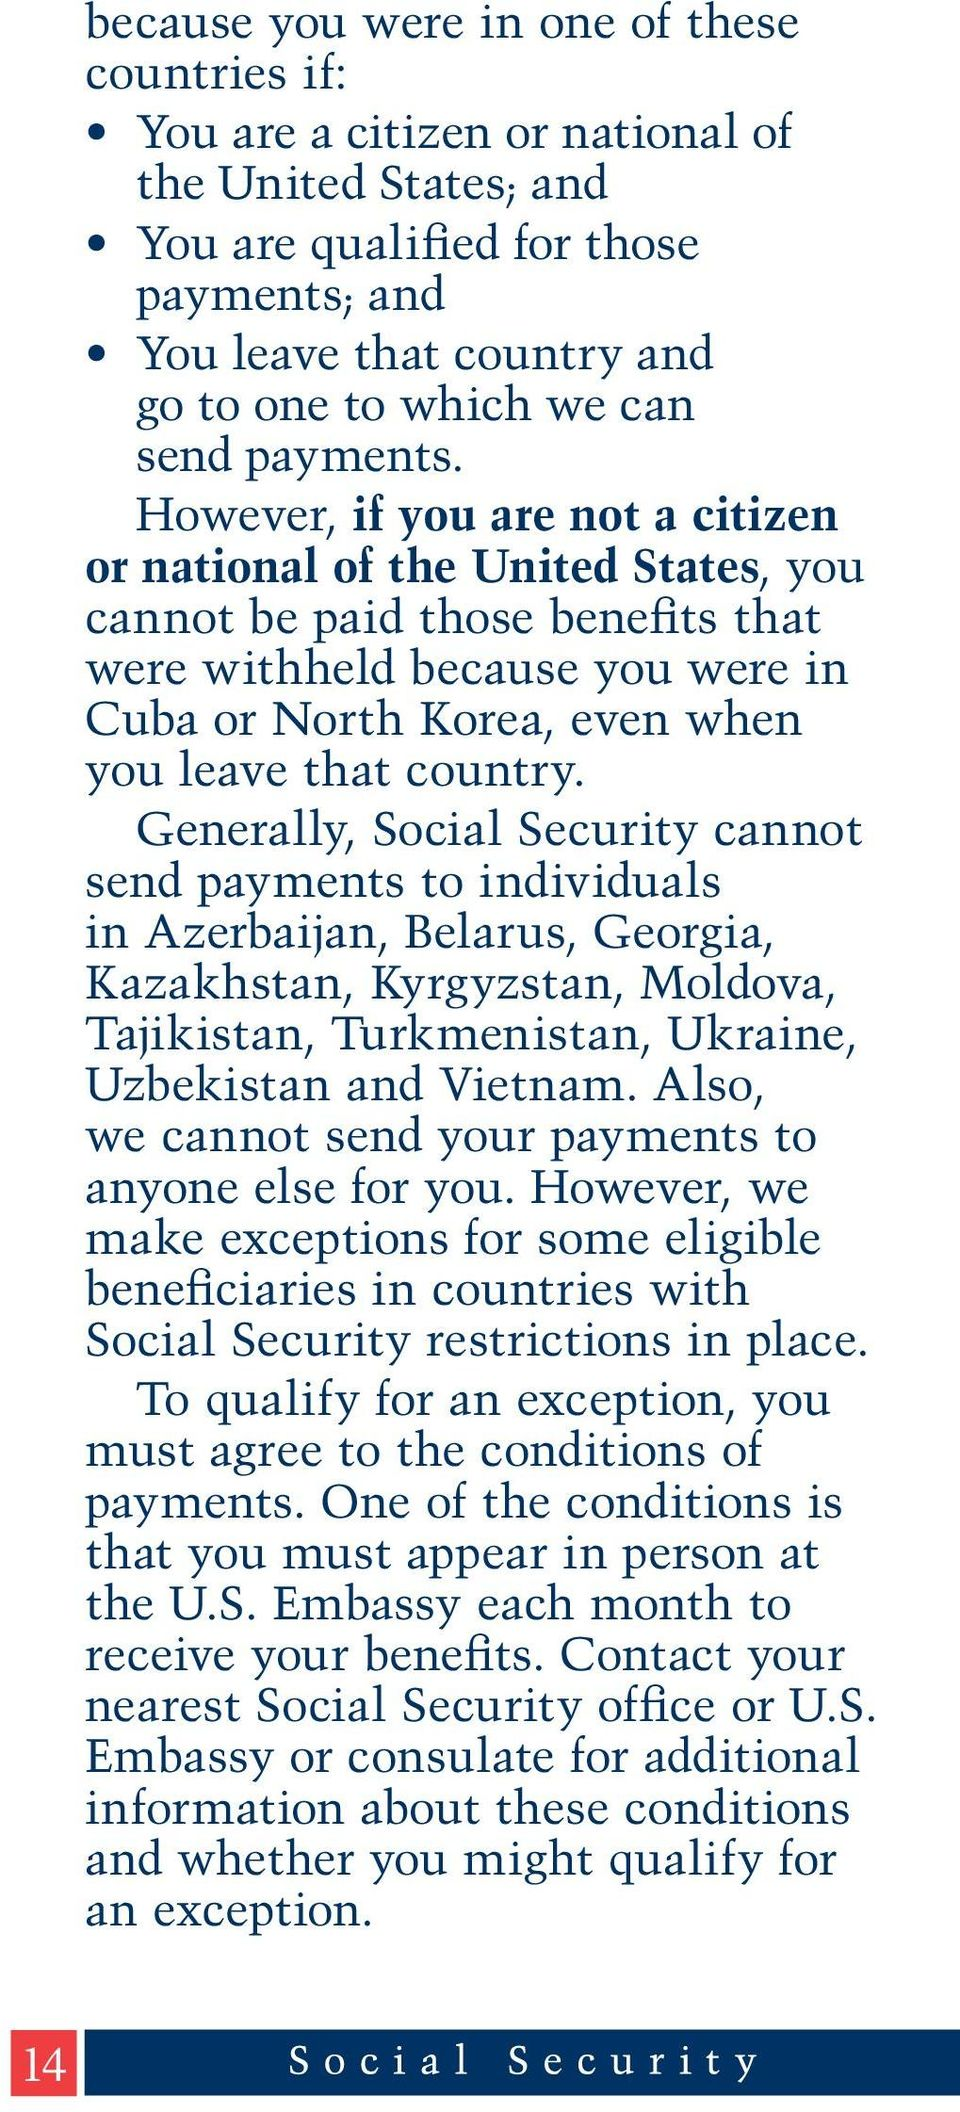 However, if you are not a citizen or national of the United States, you cannot be paid those benefits that were withheld because you were in Cuba or North Korea, even when you leave that country.